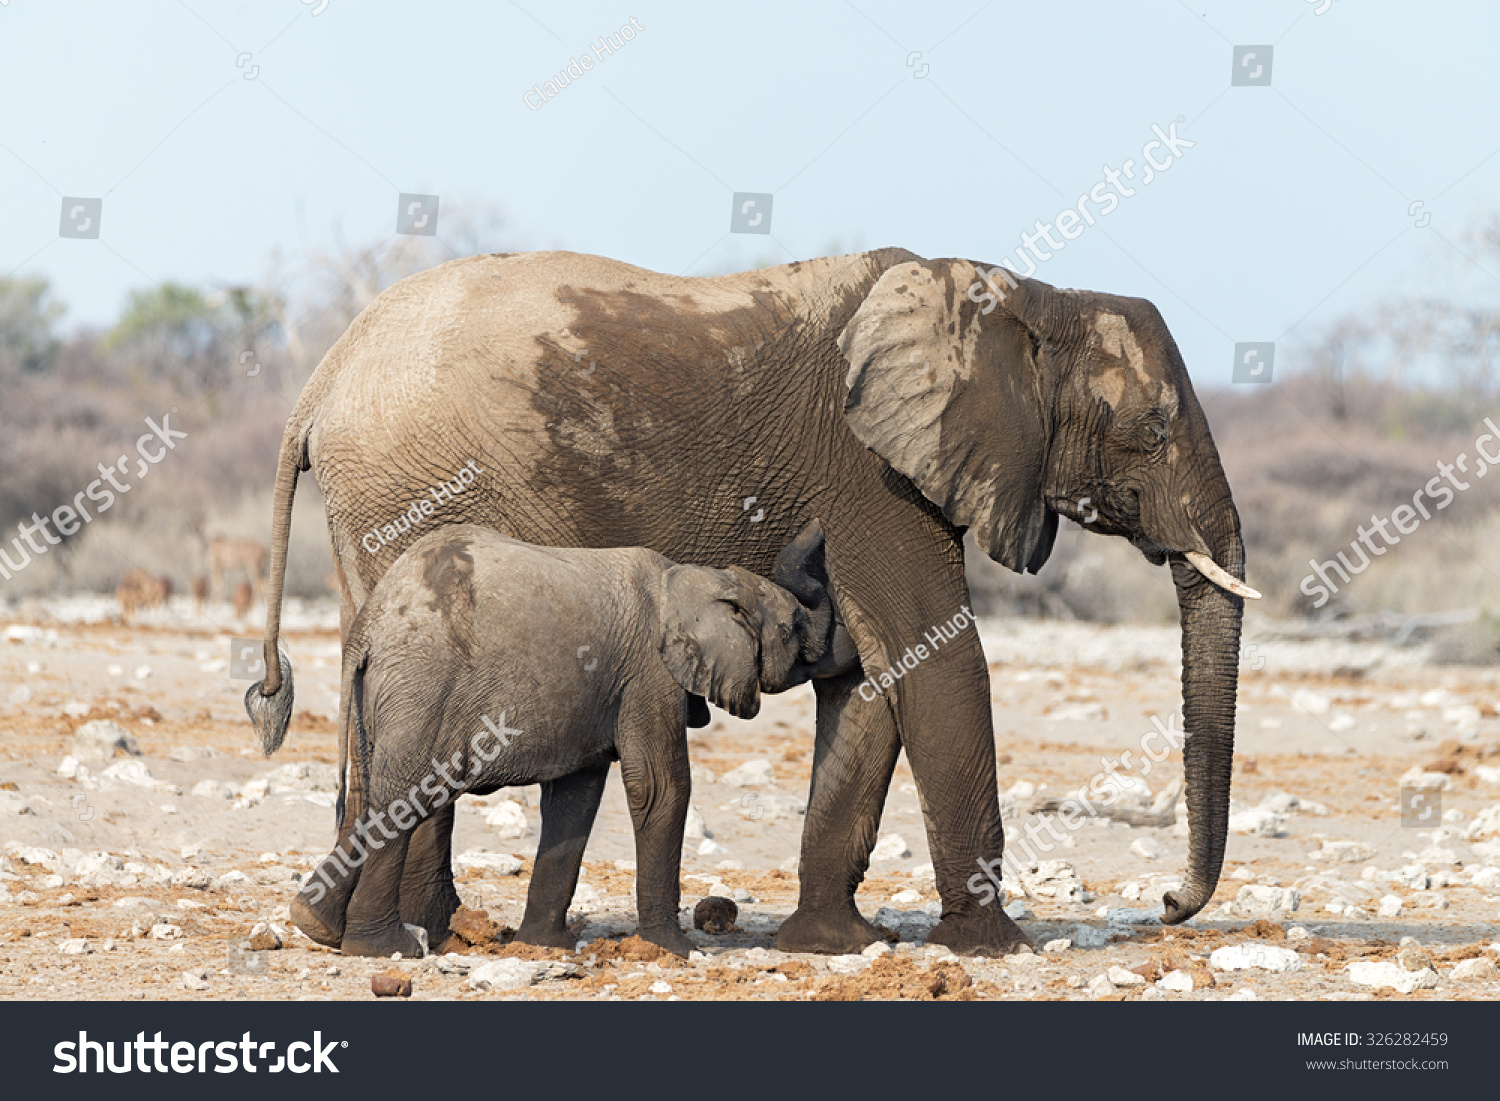 Young Elephant (Loxodonta africana) suckling its mother after a visit to a waterhole in Etosha National Park, Namibia